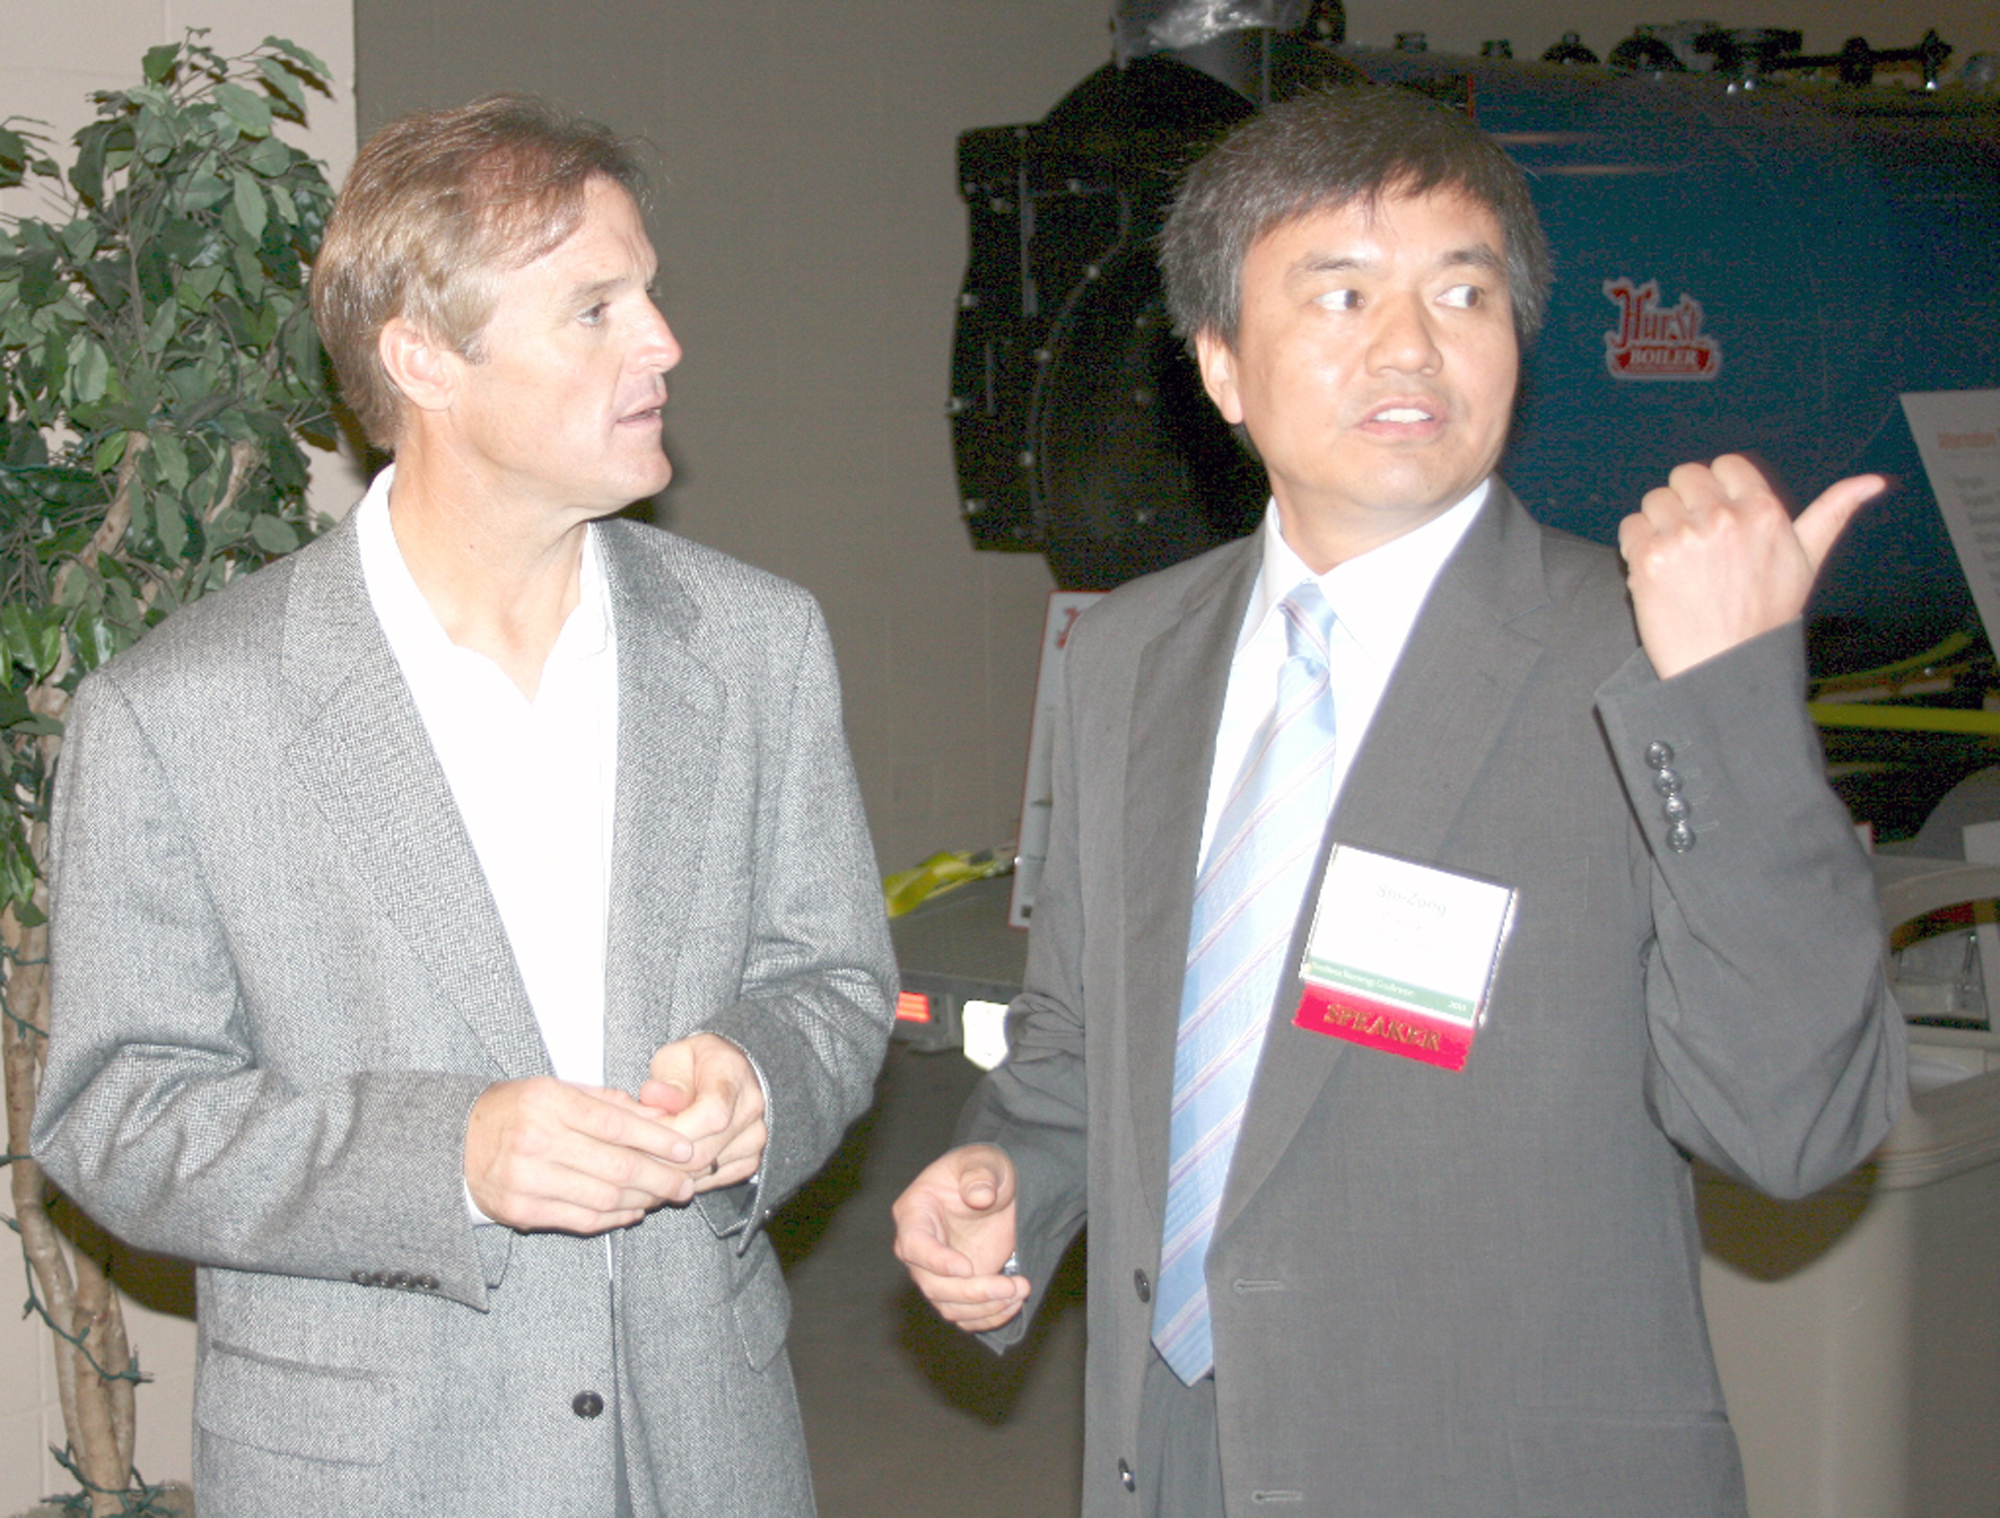 NASCAR Nationwide Series driver Kenny Wallace talks ethanol and alternative energy with Shi-Zong Li, deputy director of China's Tsinghua University Institute of New Energy Technology, at the 6th annual Southeast Bioenergy Conference Aug. 9 in Tifton, Ga.